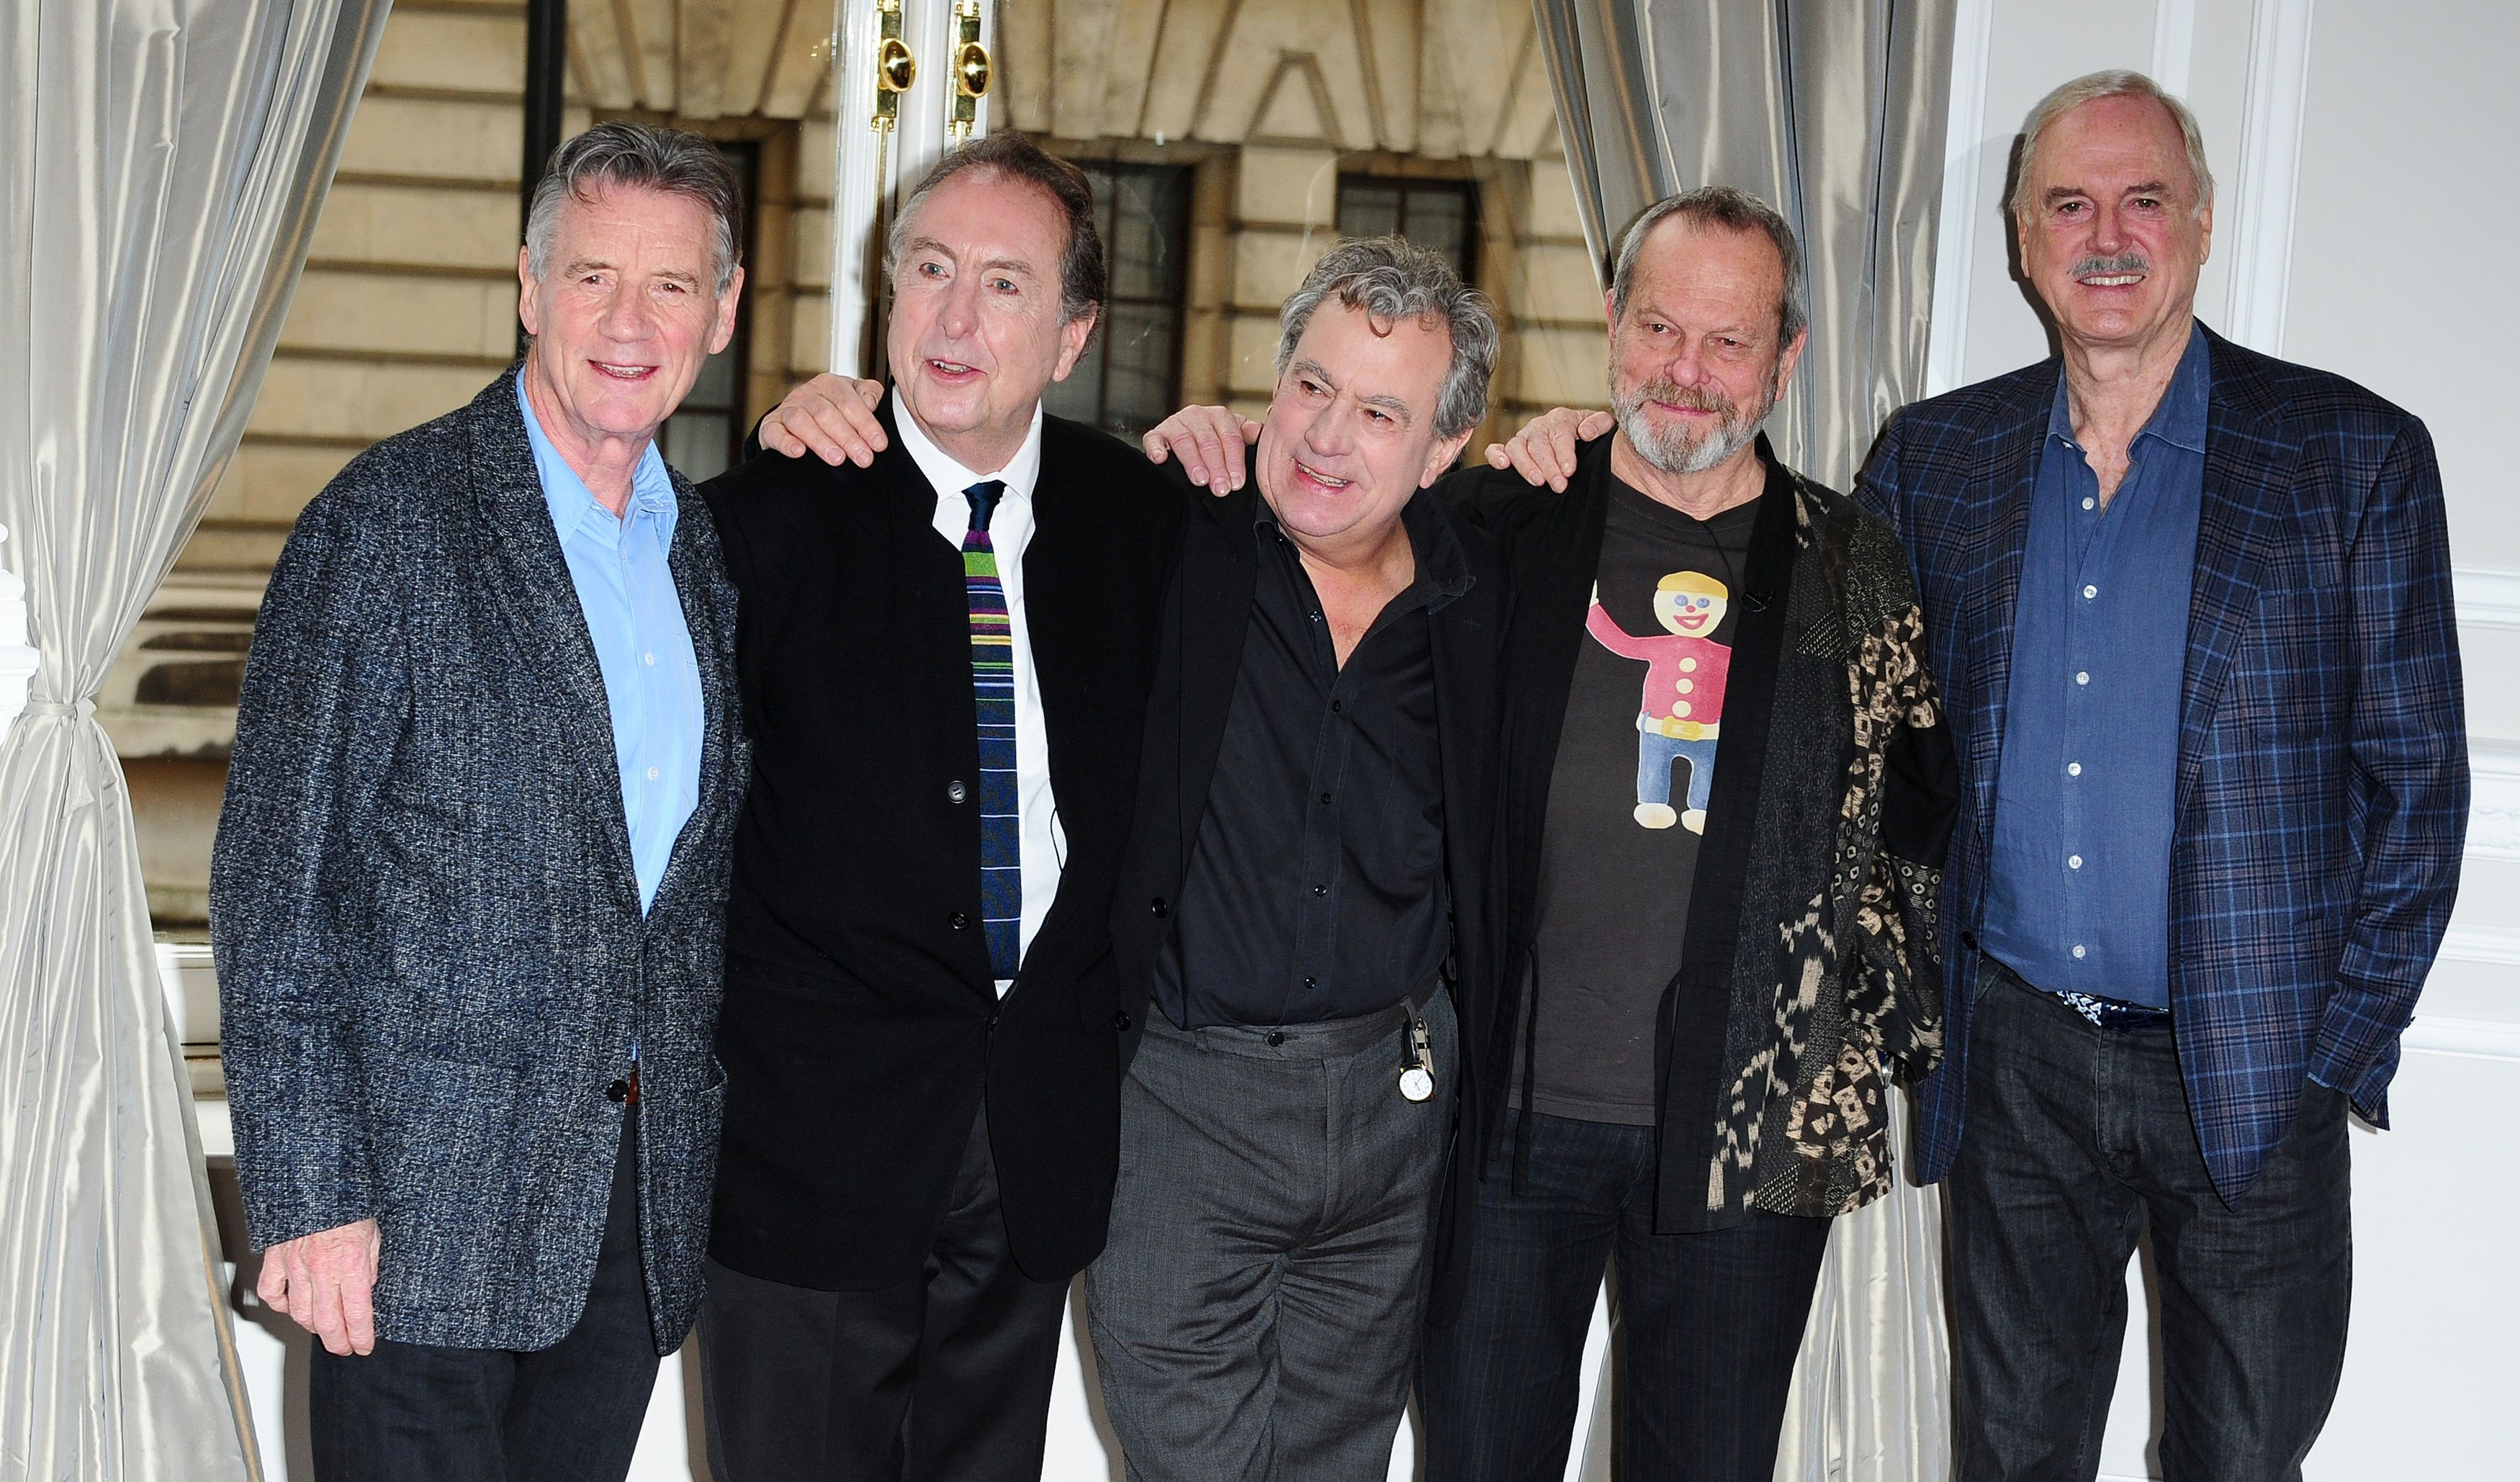 (Left-right) Michael Palin, Eric Idle, Terry Jones, Terry Gilliam and John Cleese in 2013 (Ian West/PA)